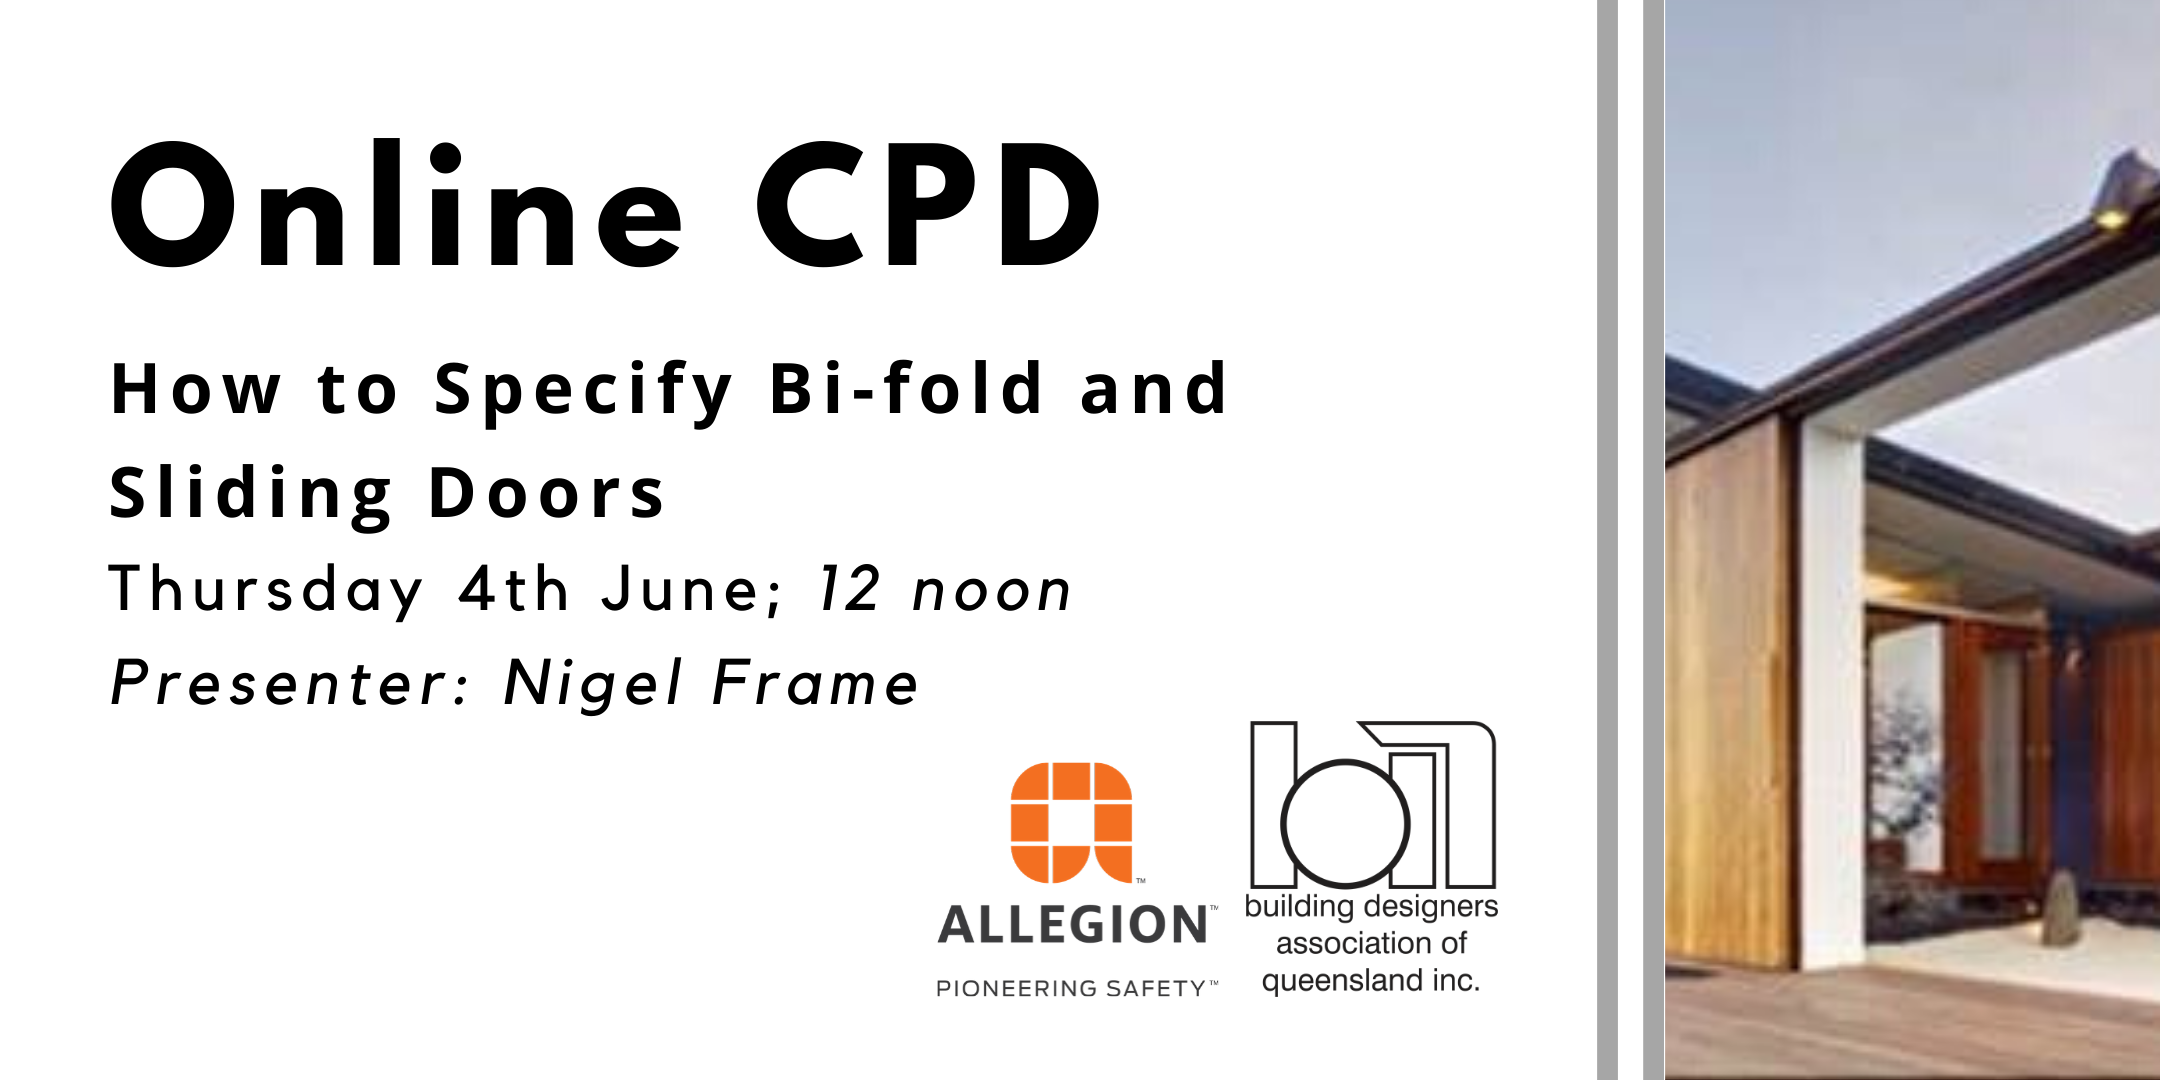 ONLINE CPD: How to Specify Bi-fold and Sliding Doors